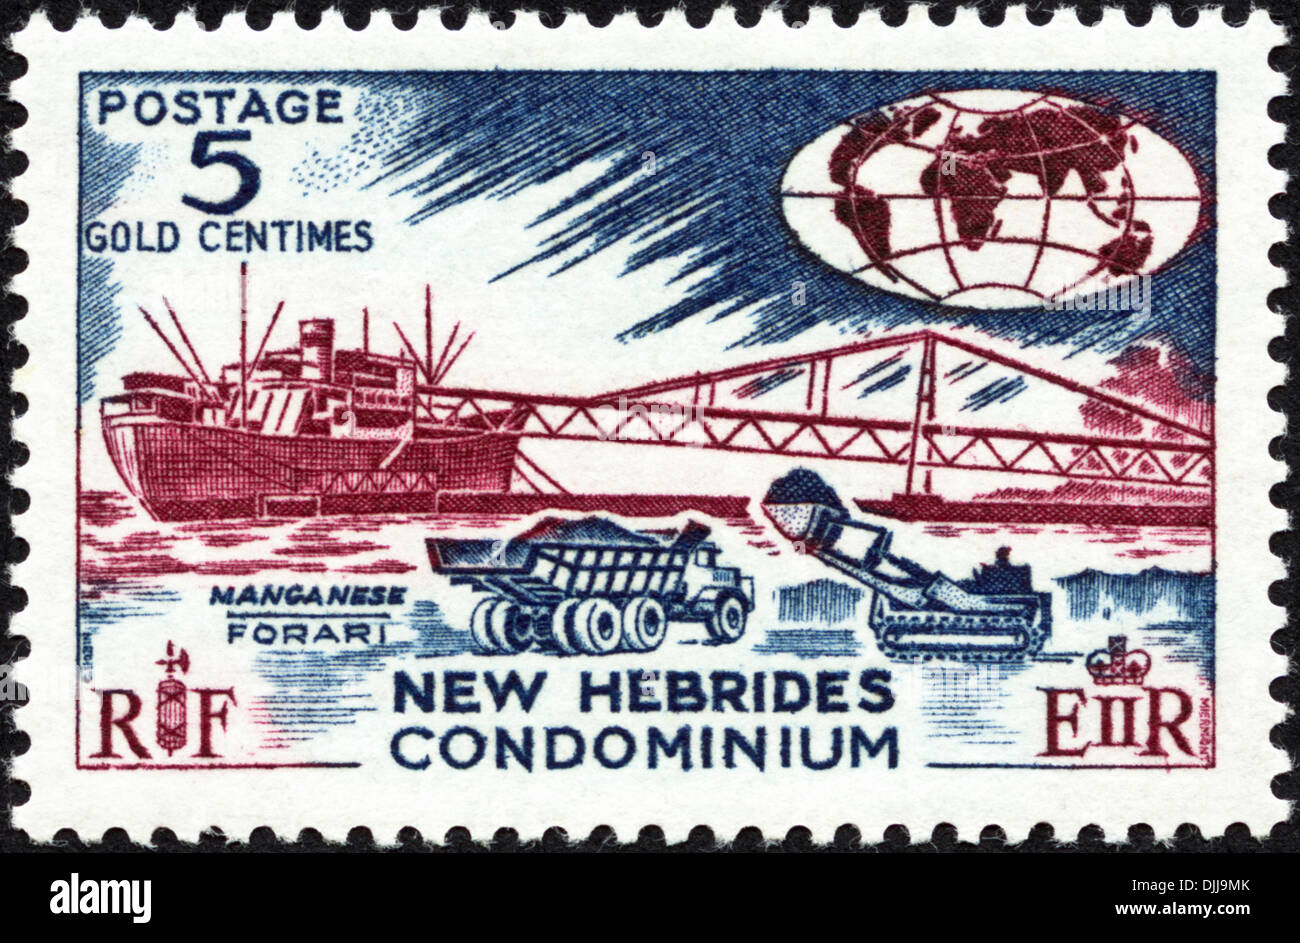 postage stamp New Hebrides Condominium 5c featuring Manganese Forari issued 1966Stock Photo